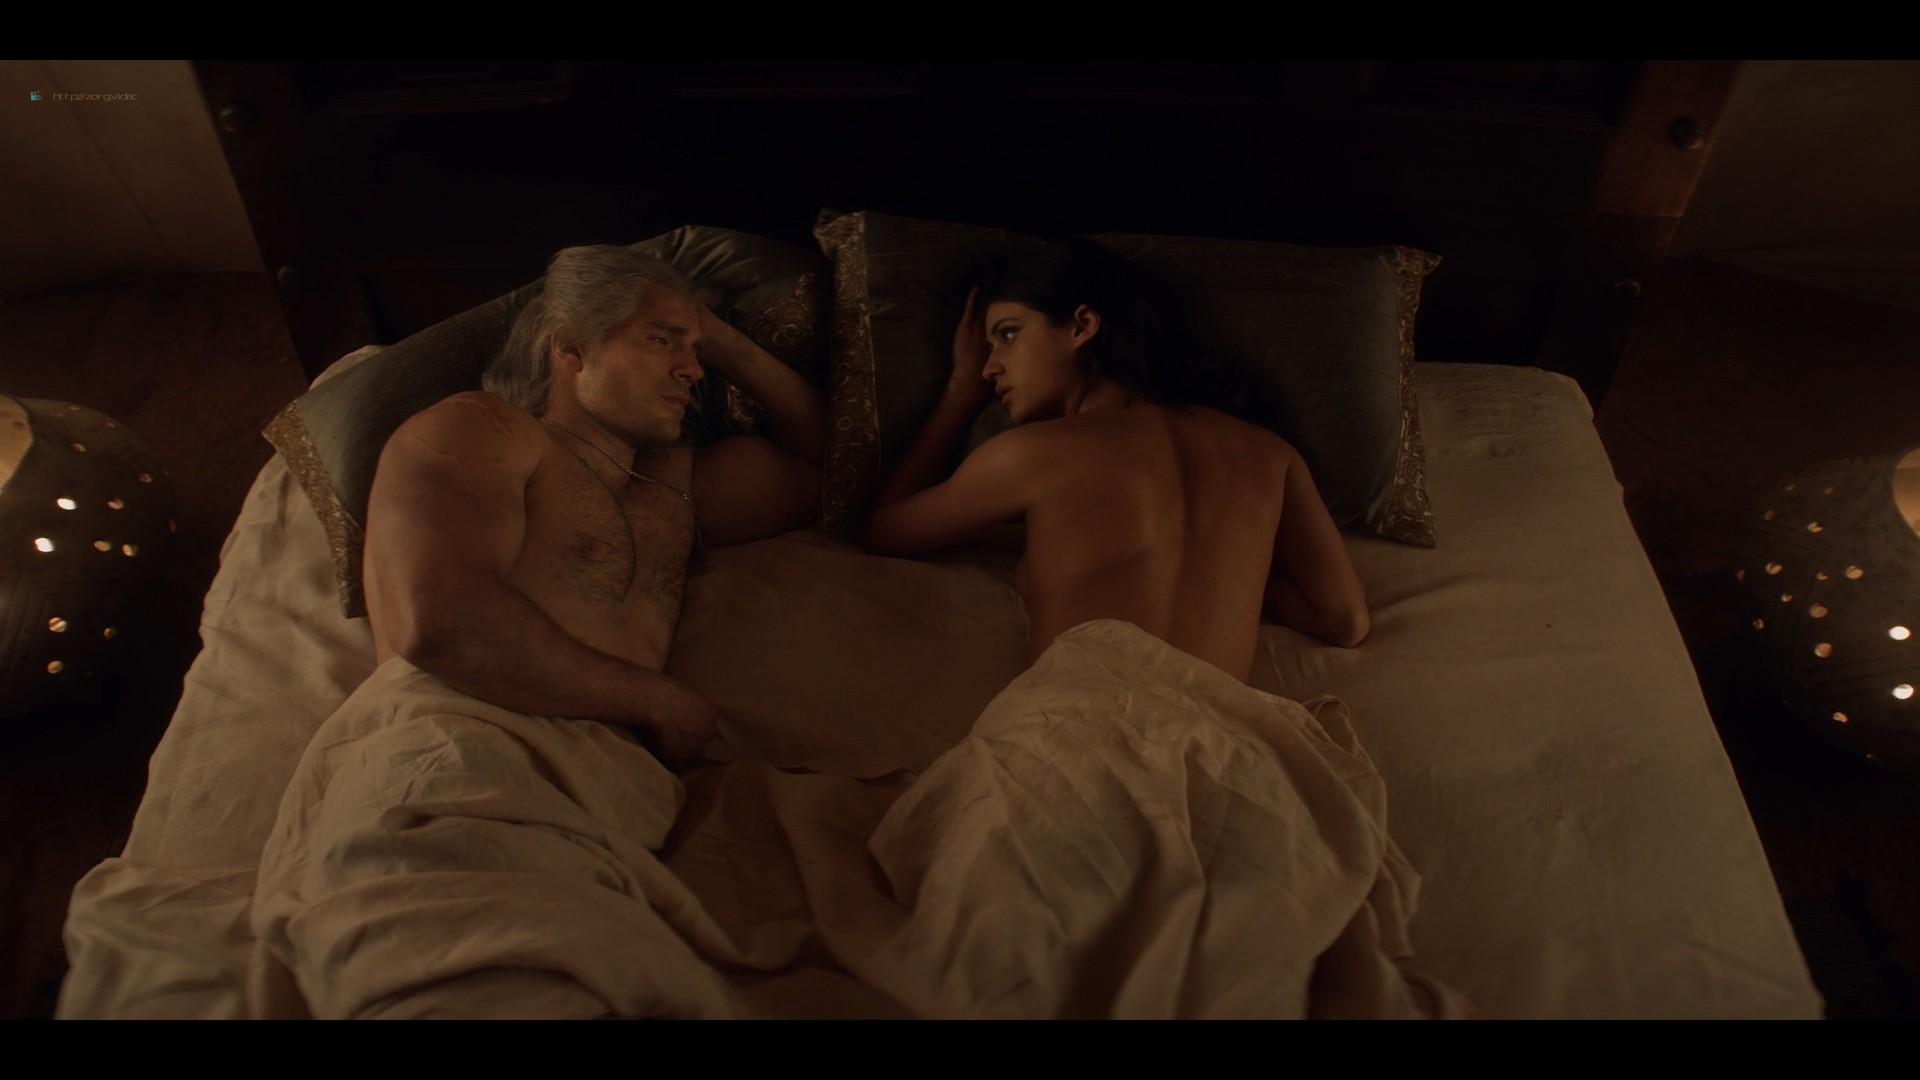 Anya Chalotra nude others nude too - The Witcher (2019) s1e5-6 HD 1080p WEB (3)